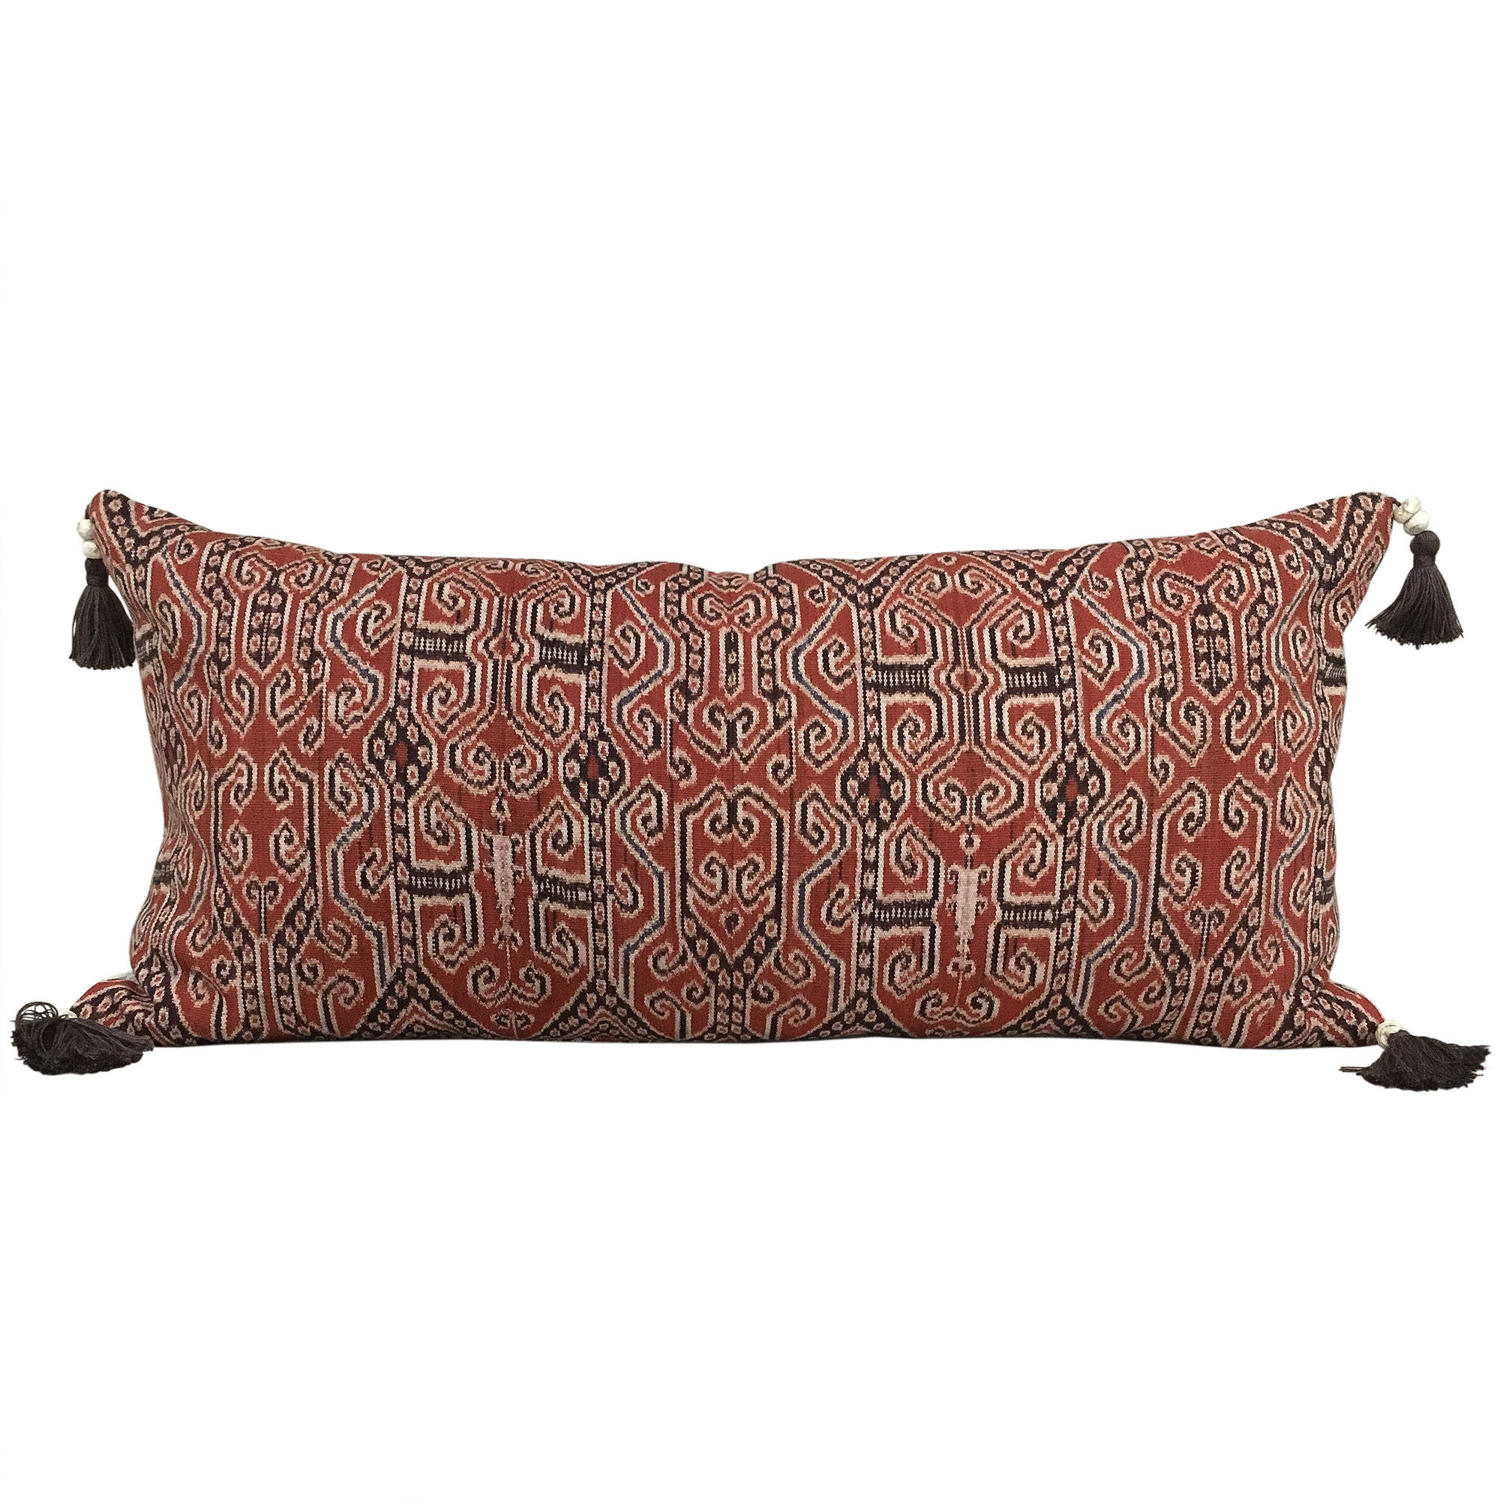 Large Iban Ikat Cushion with Beaded Tassels